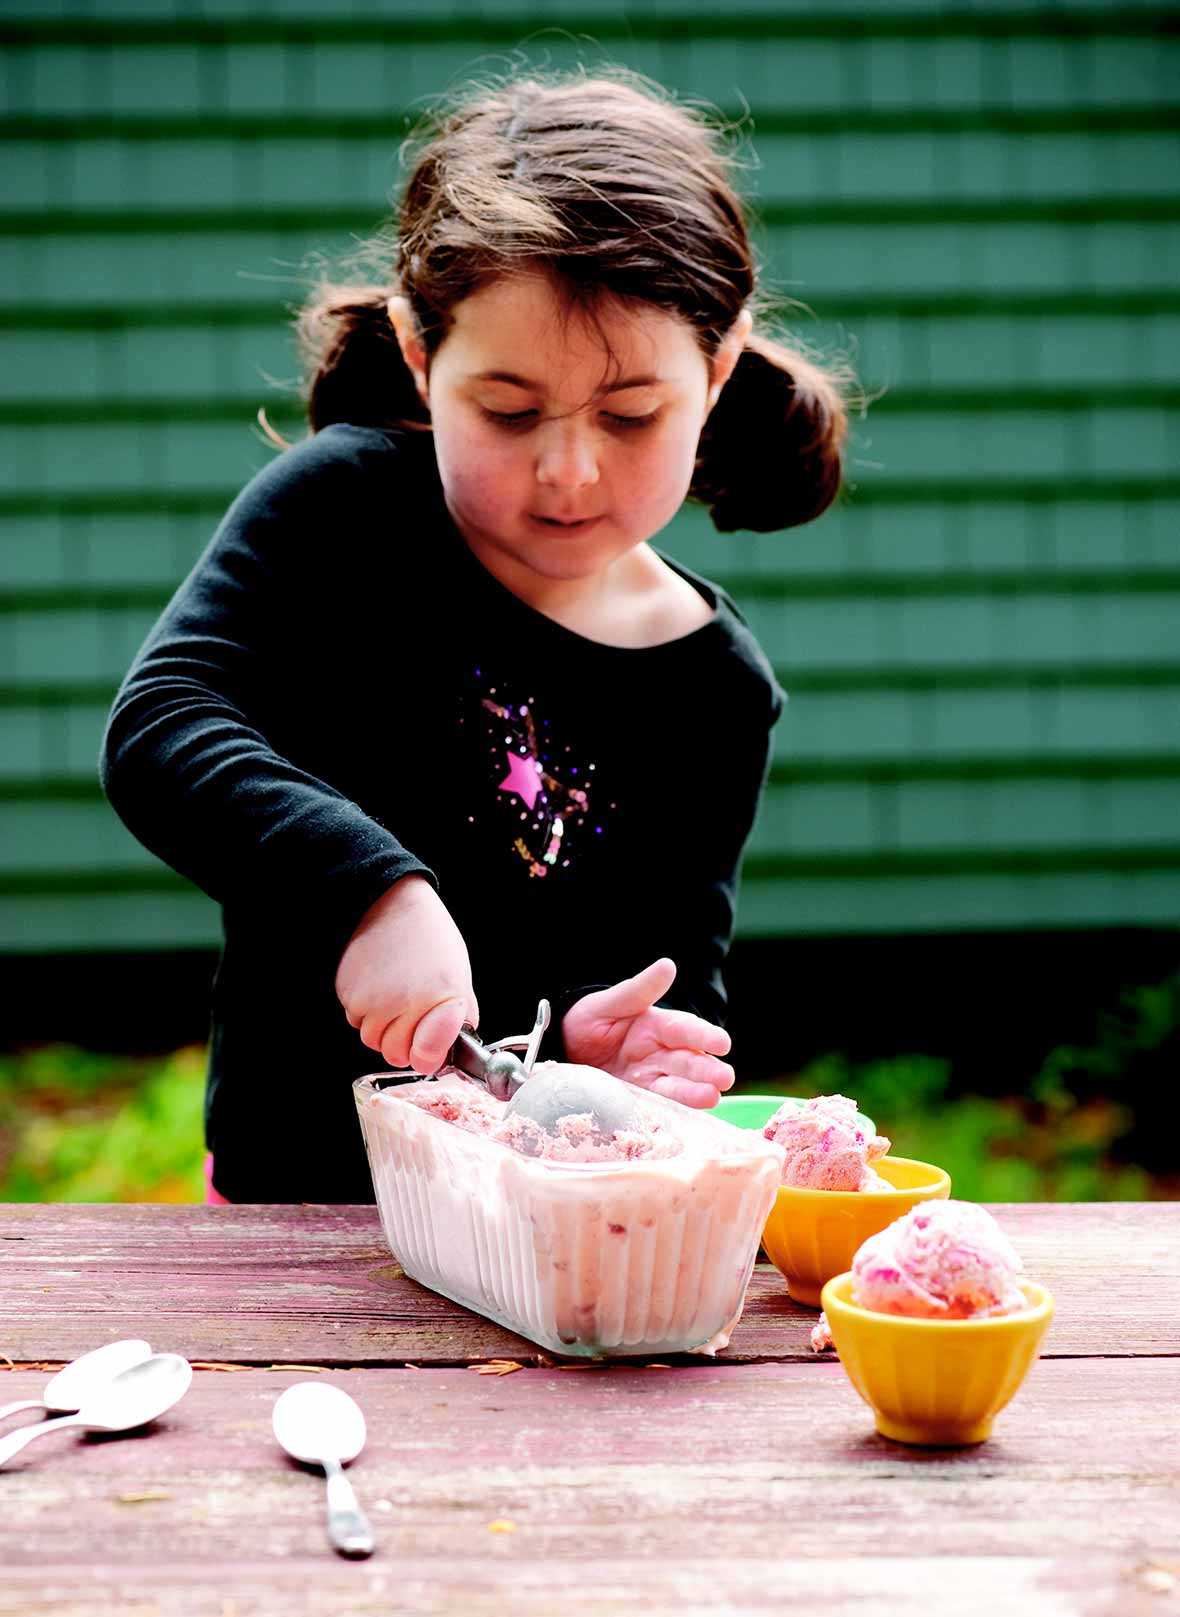 A little girl scooping strawberry ice cream into bowls.